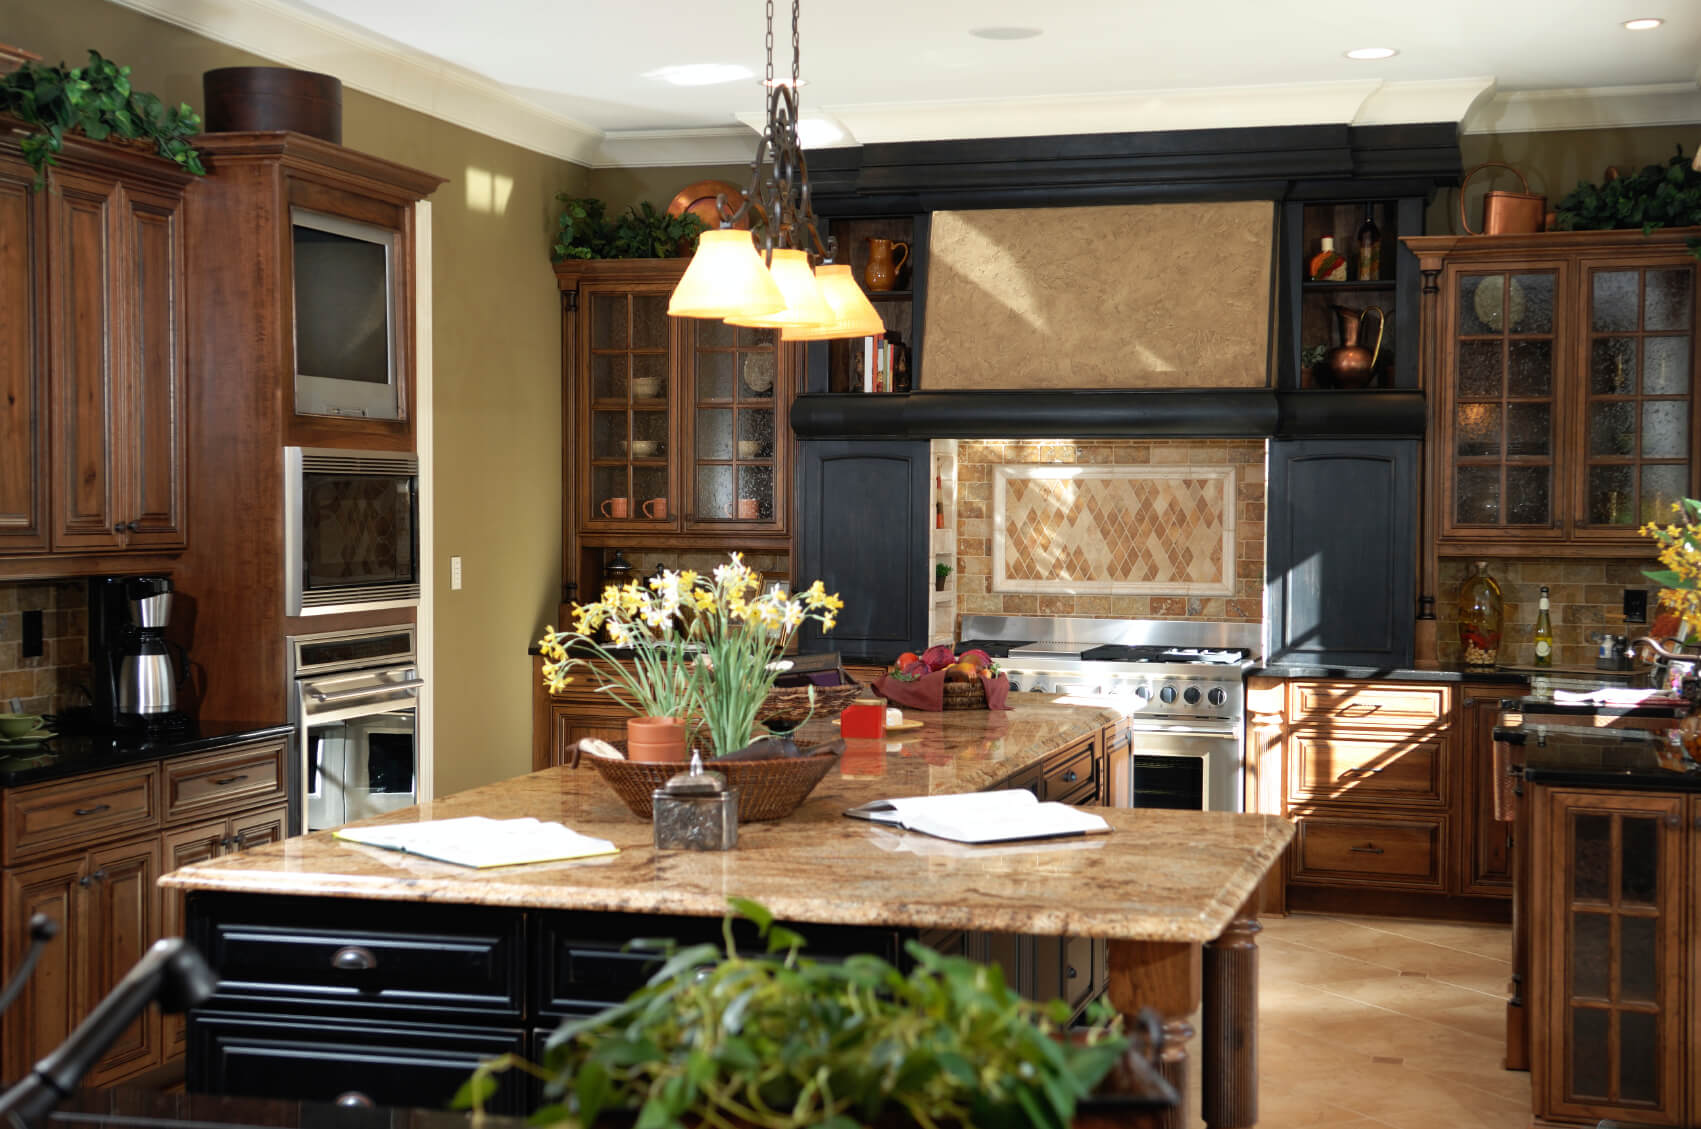 Black wood cabinetry surrounds range with beige tile backsplash in this detailed kitchen. L-shaped island features more black paneling, while rest of kitchen is flush with dark natural wood tones.